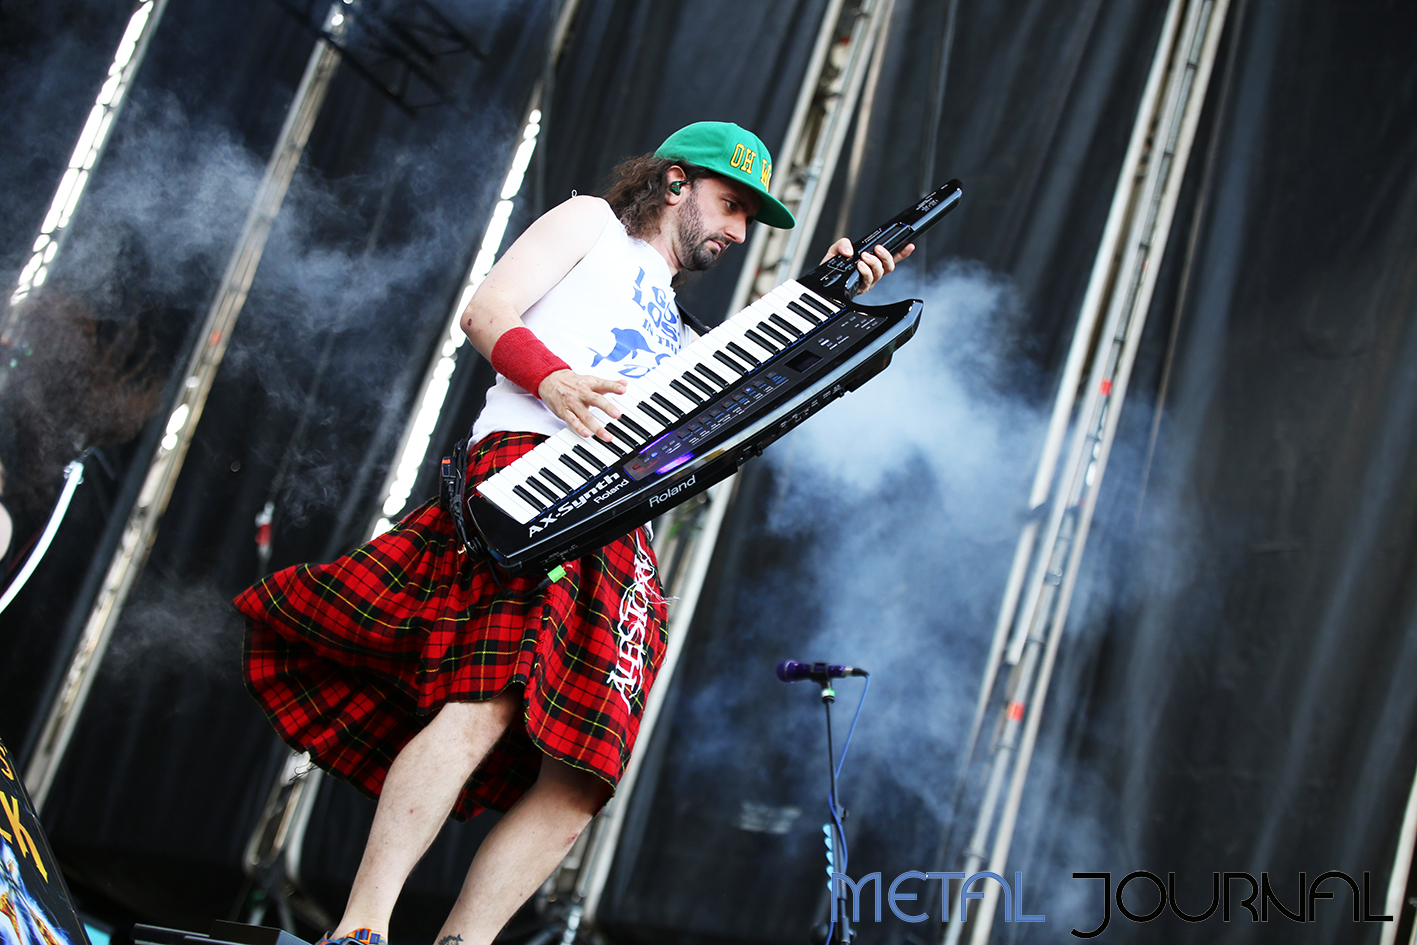 alestorm - leyendas del rock 2019 metal journal pic 1